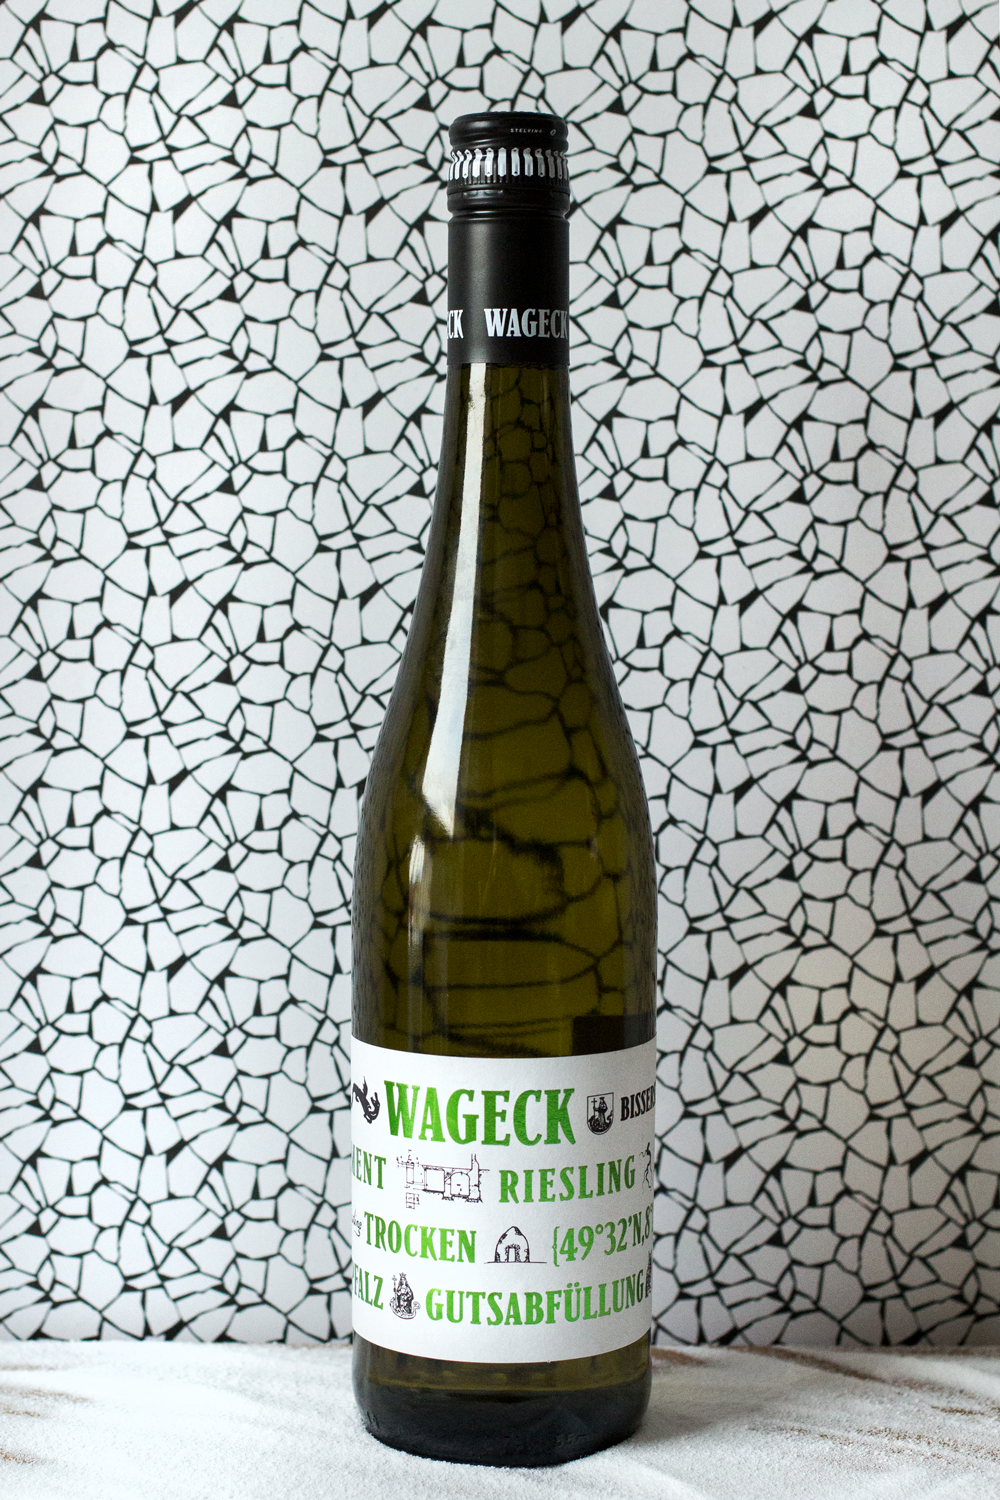 Weingut-Wageck-Fundament-'Green-Label'-Riesling-2016-German-Wine-Review-by-Bottle-Bitches.png